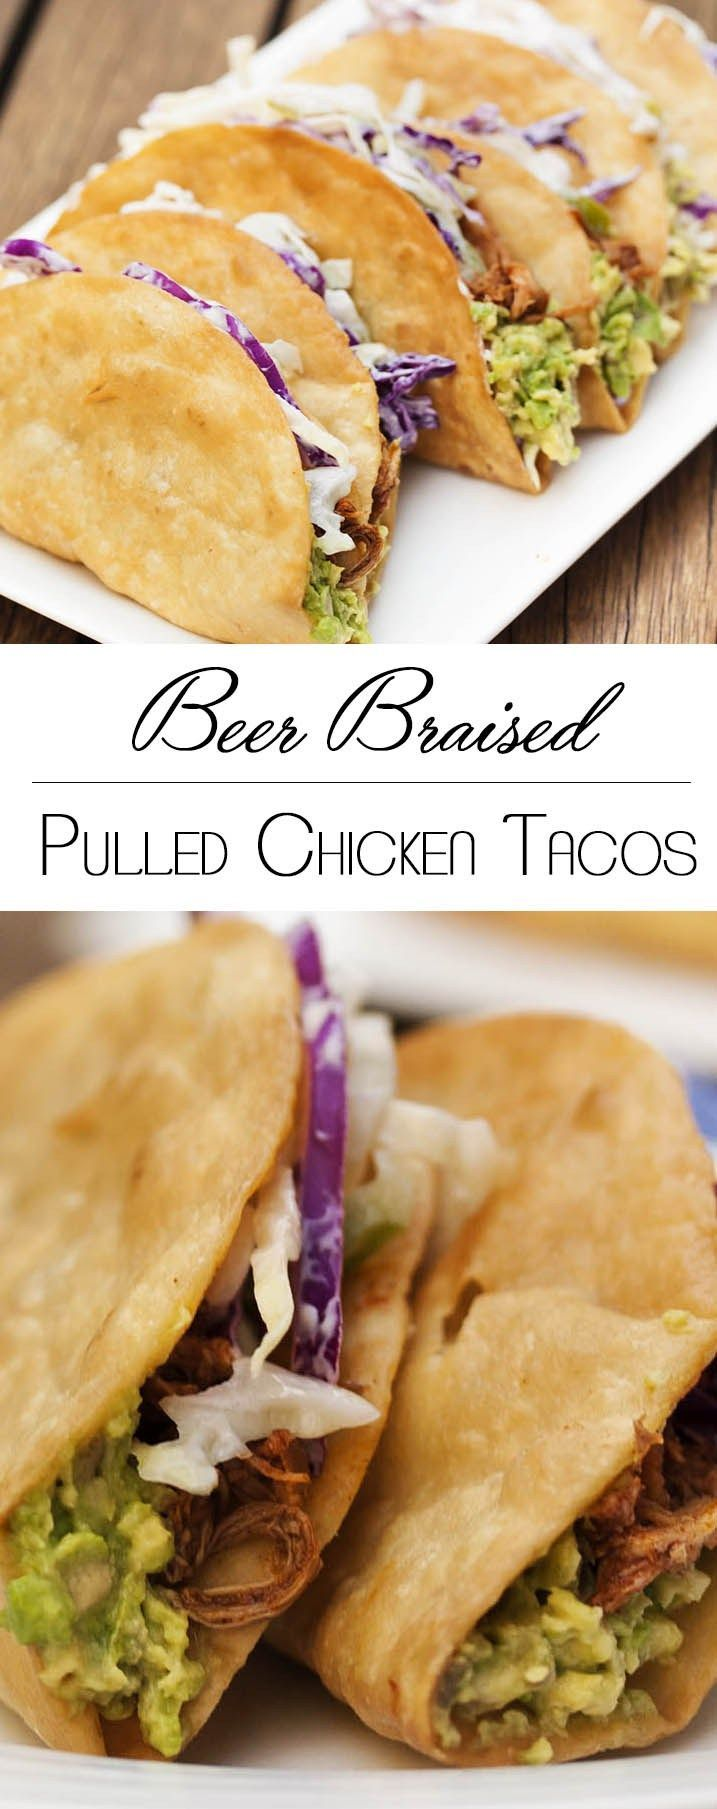 Beer Braised Pulled Chicken Tacos - These tacos feature slow cooked chicken braised in beer and finished with adobo sauce all layered with spicy coleslaw and guacamole.   justalittlebitofbacon.com